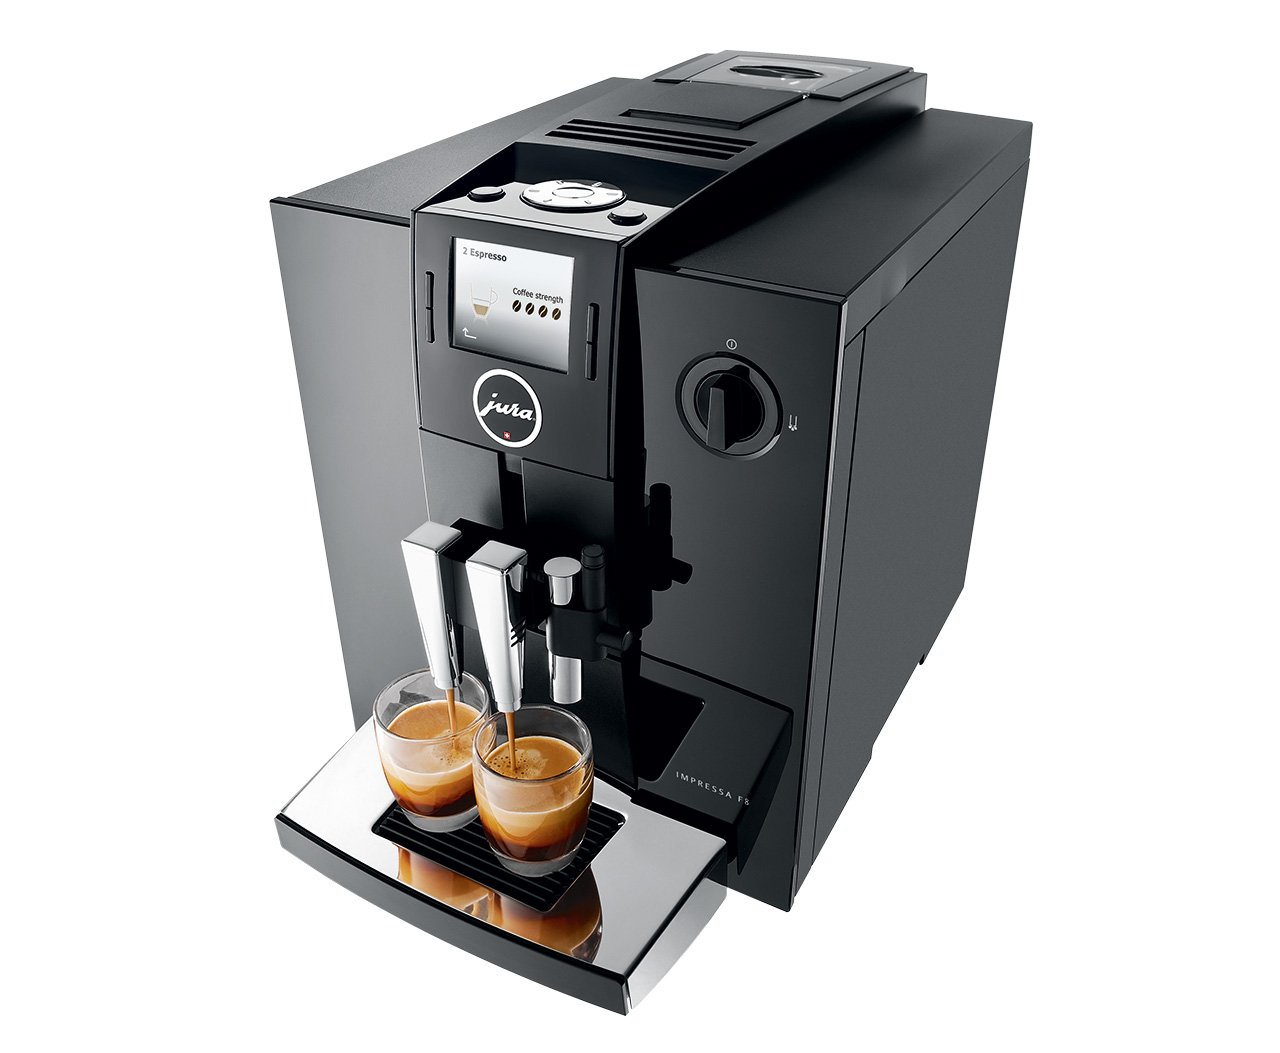 amazoncom jura impressa f8 automatic coffee machine black kitchen u0026 dining - Jura Espresso